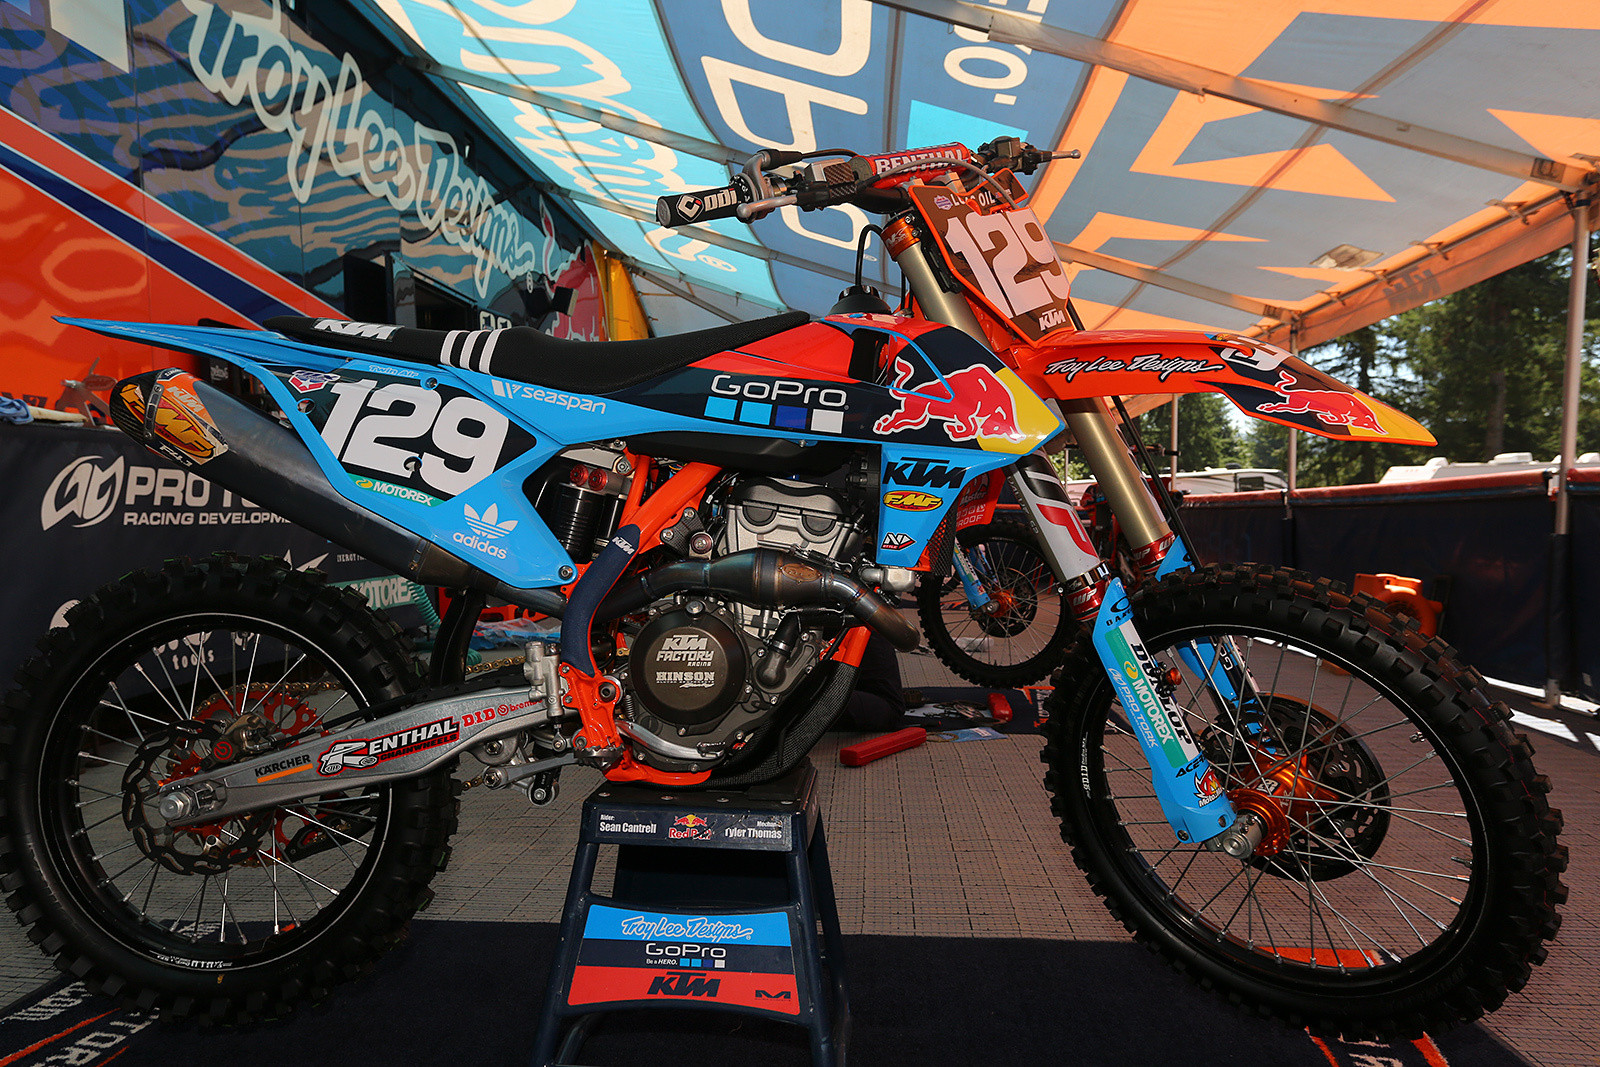 Unlike previous customs that the Troy Lee Designs/Red Bull/KTM crew has brought to Washougal, this time the plastic parts weren't merely painted. Acerbis dialed in the crew with blue plastic, and it's available as a limited edition full plastic kit.